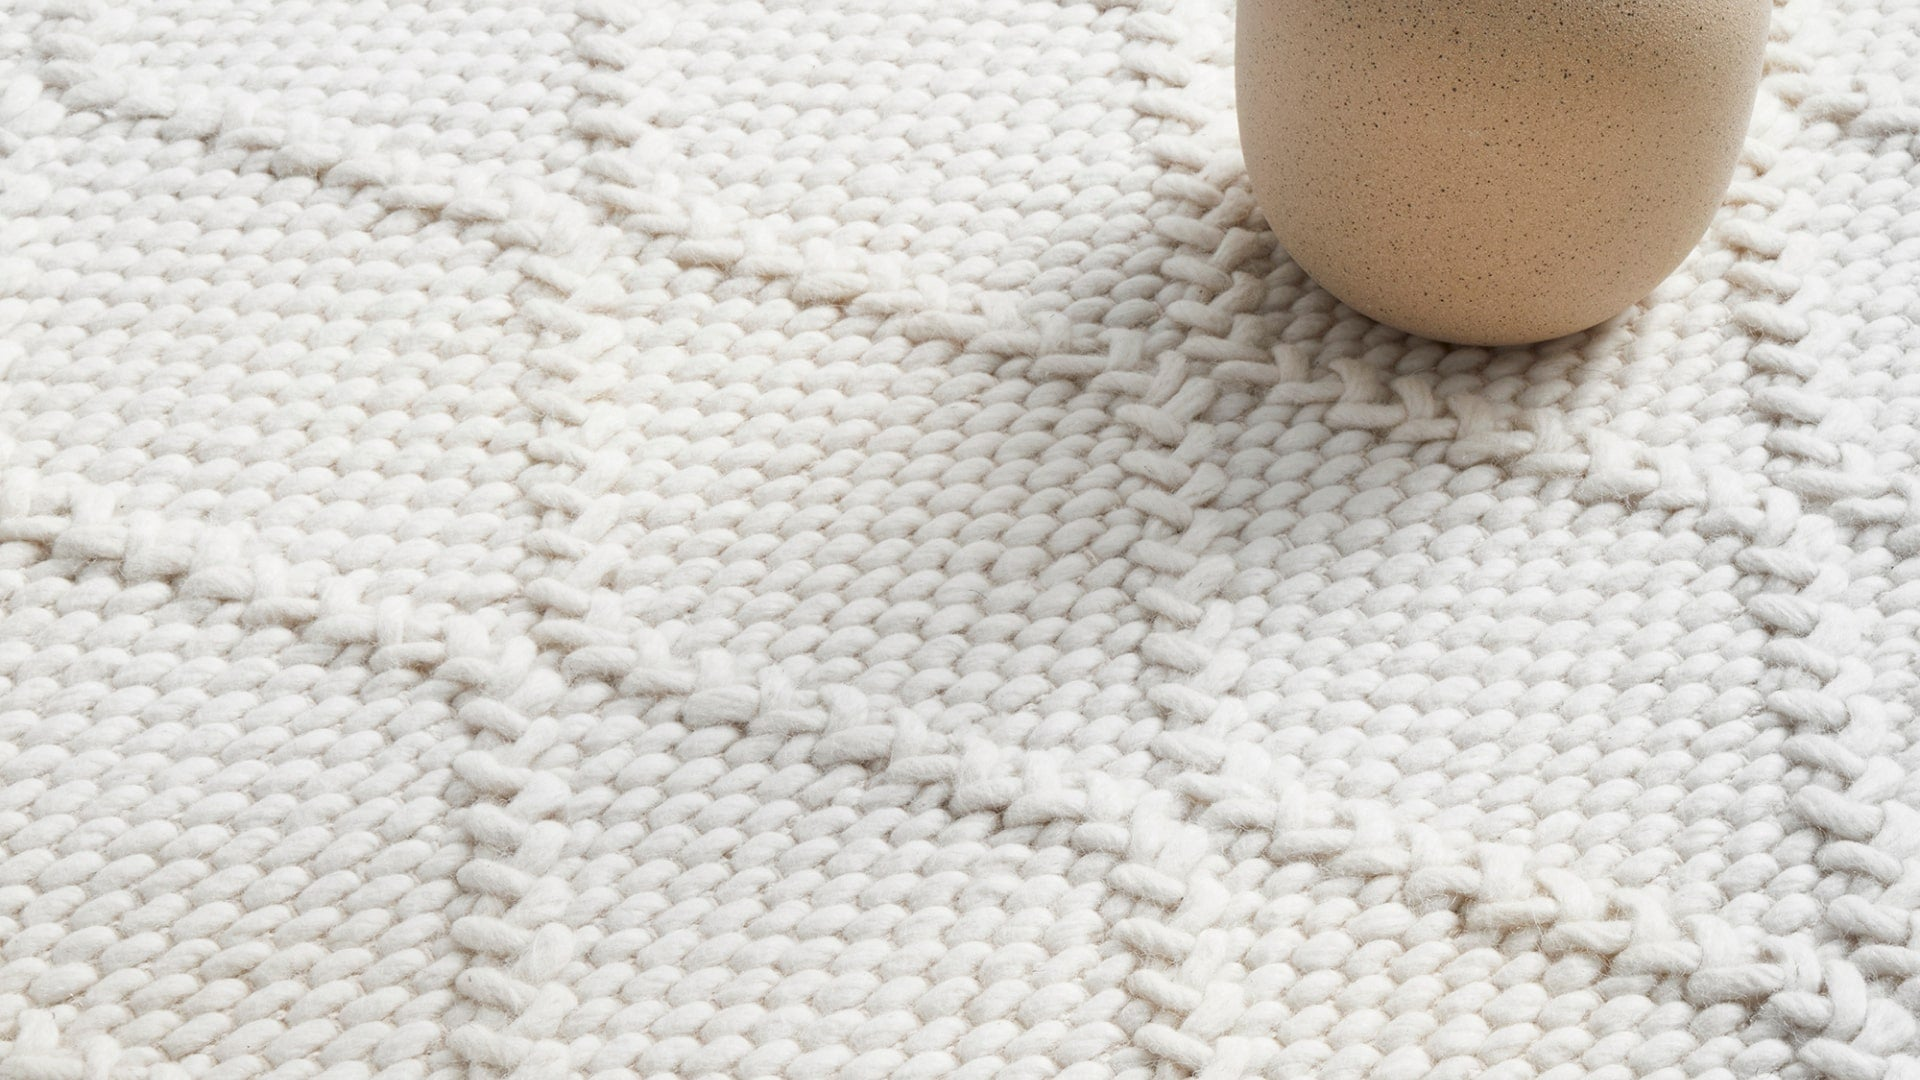 Find Quality Rugs Affordable Prices